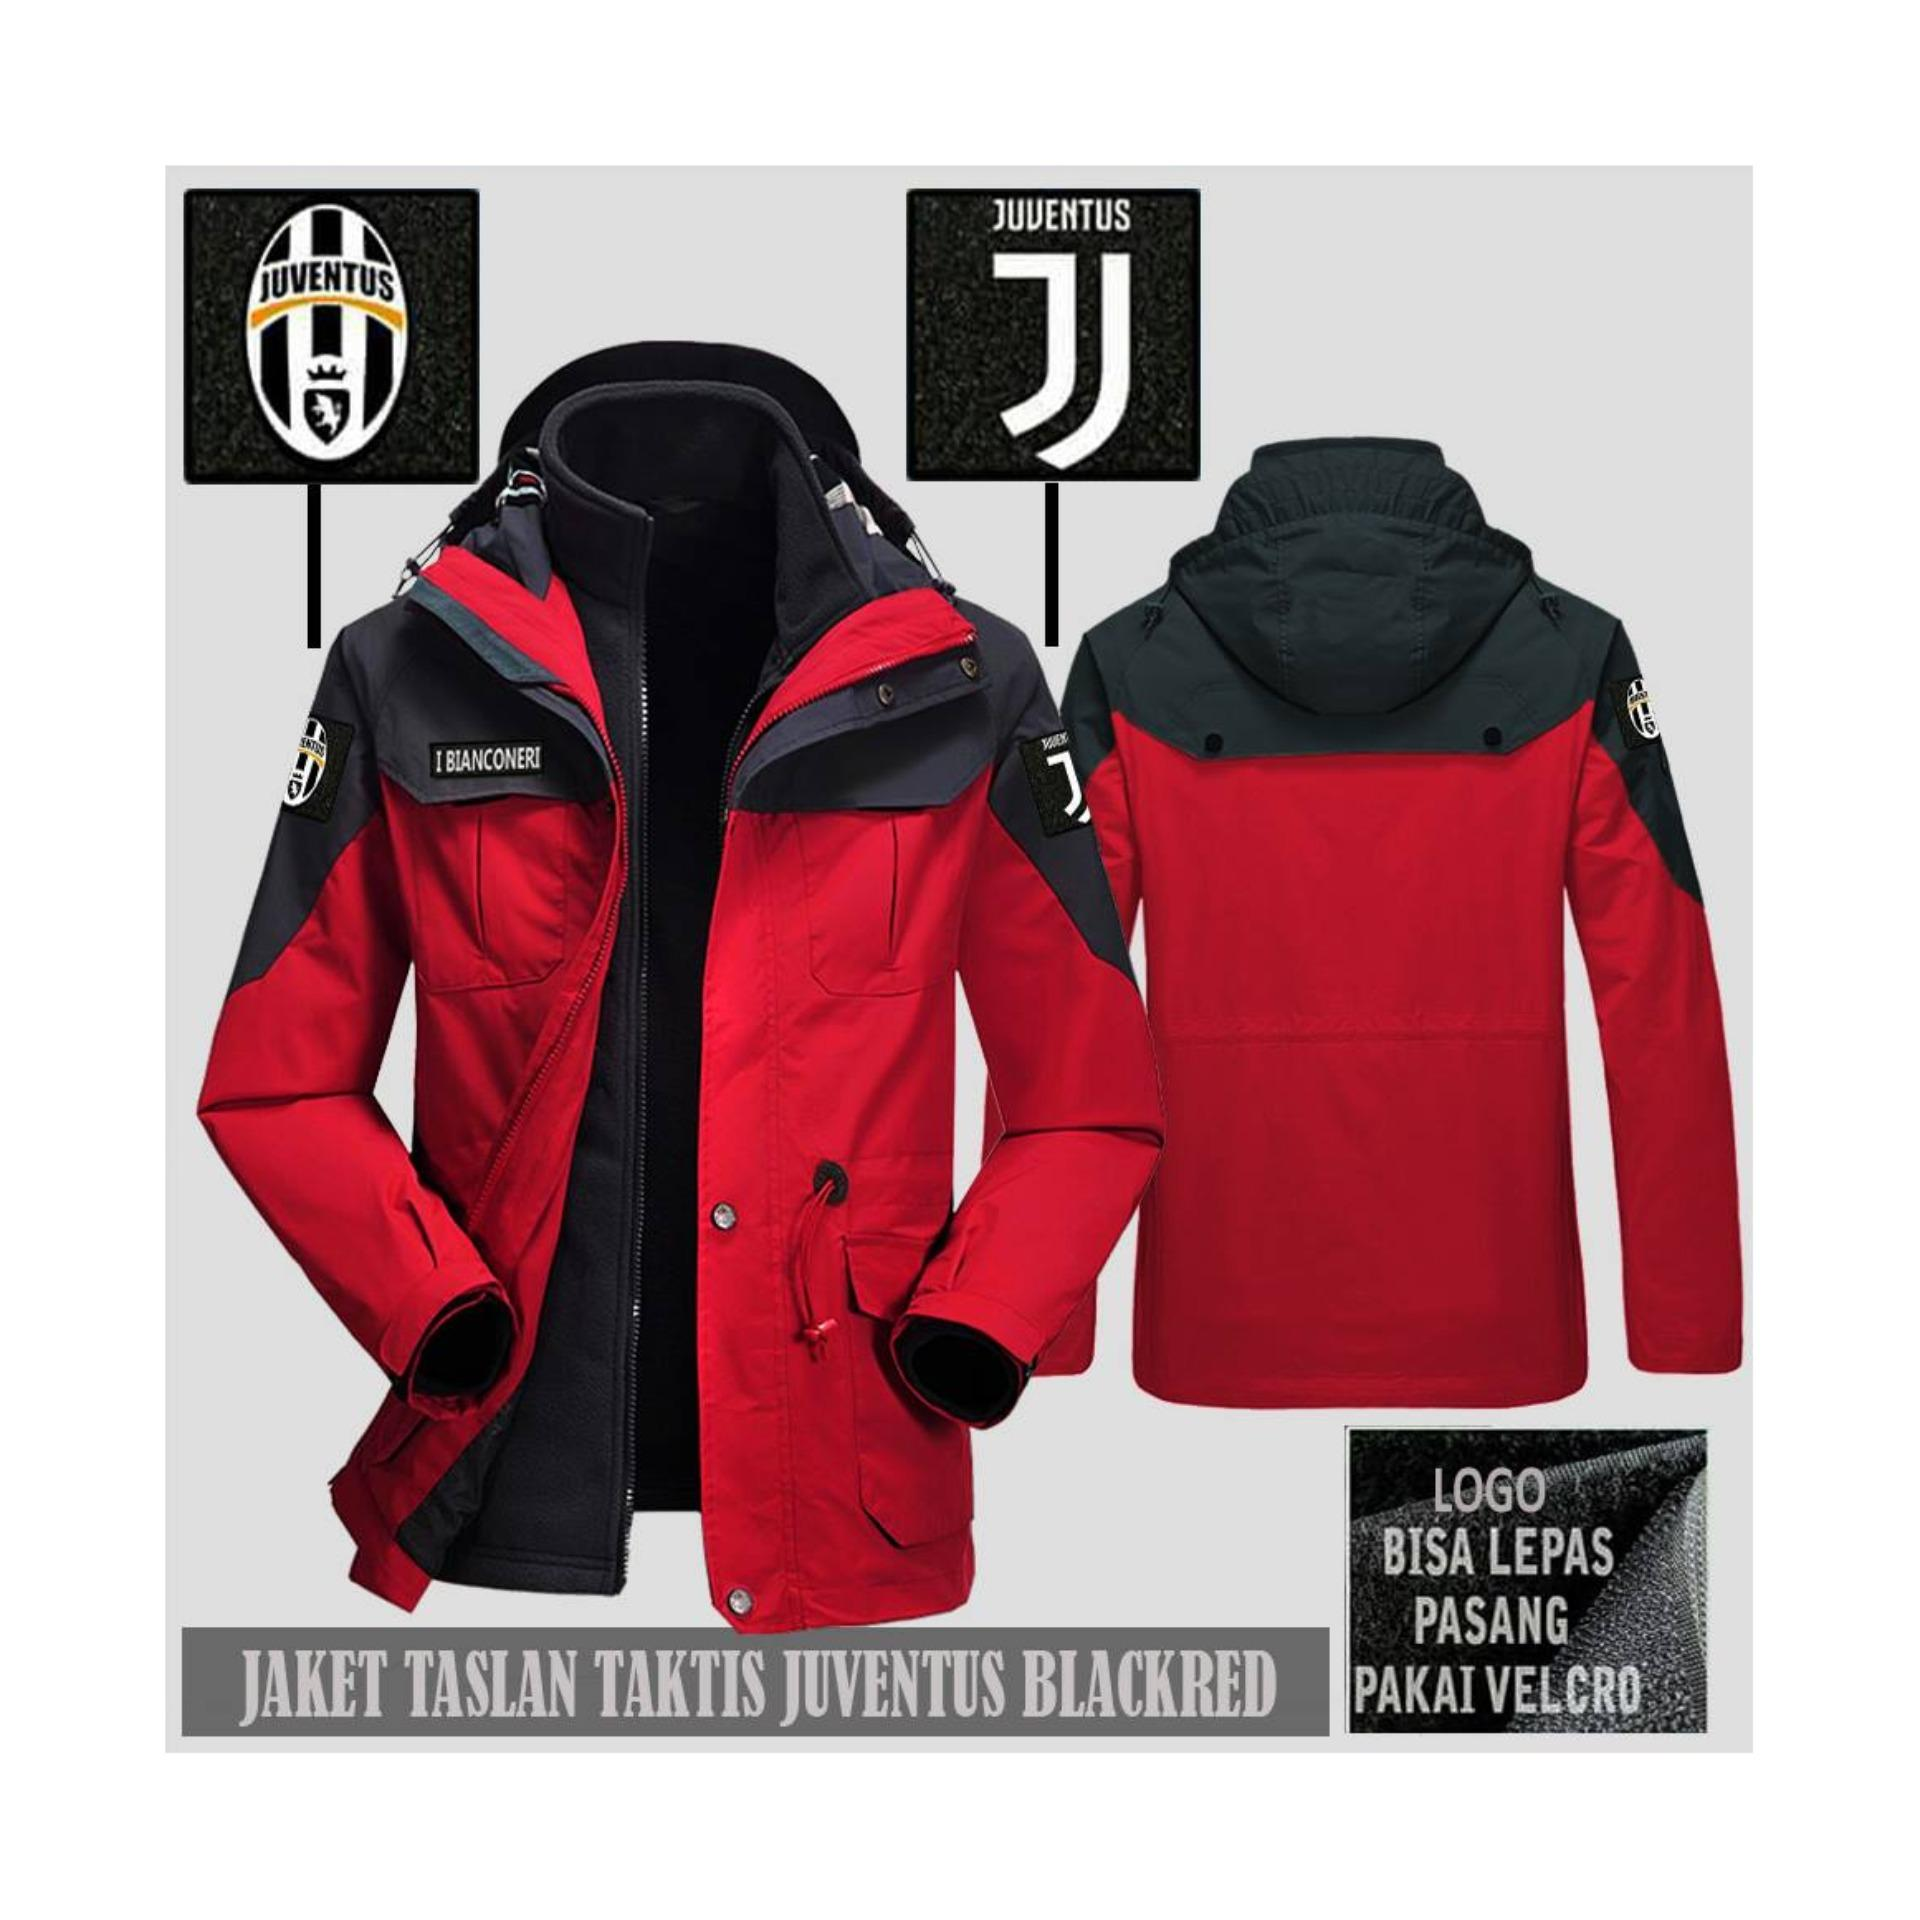 Jaket Taktis Merah bola JUVE waterproof taktikal bertudung all club militer outdor anti air